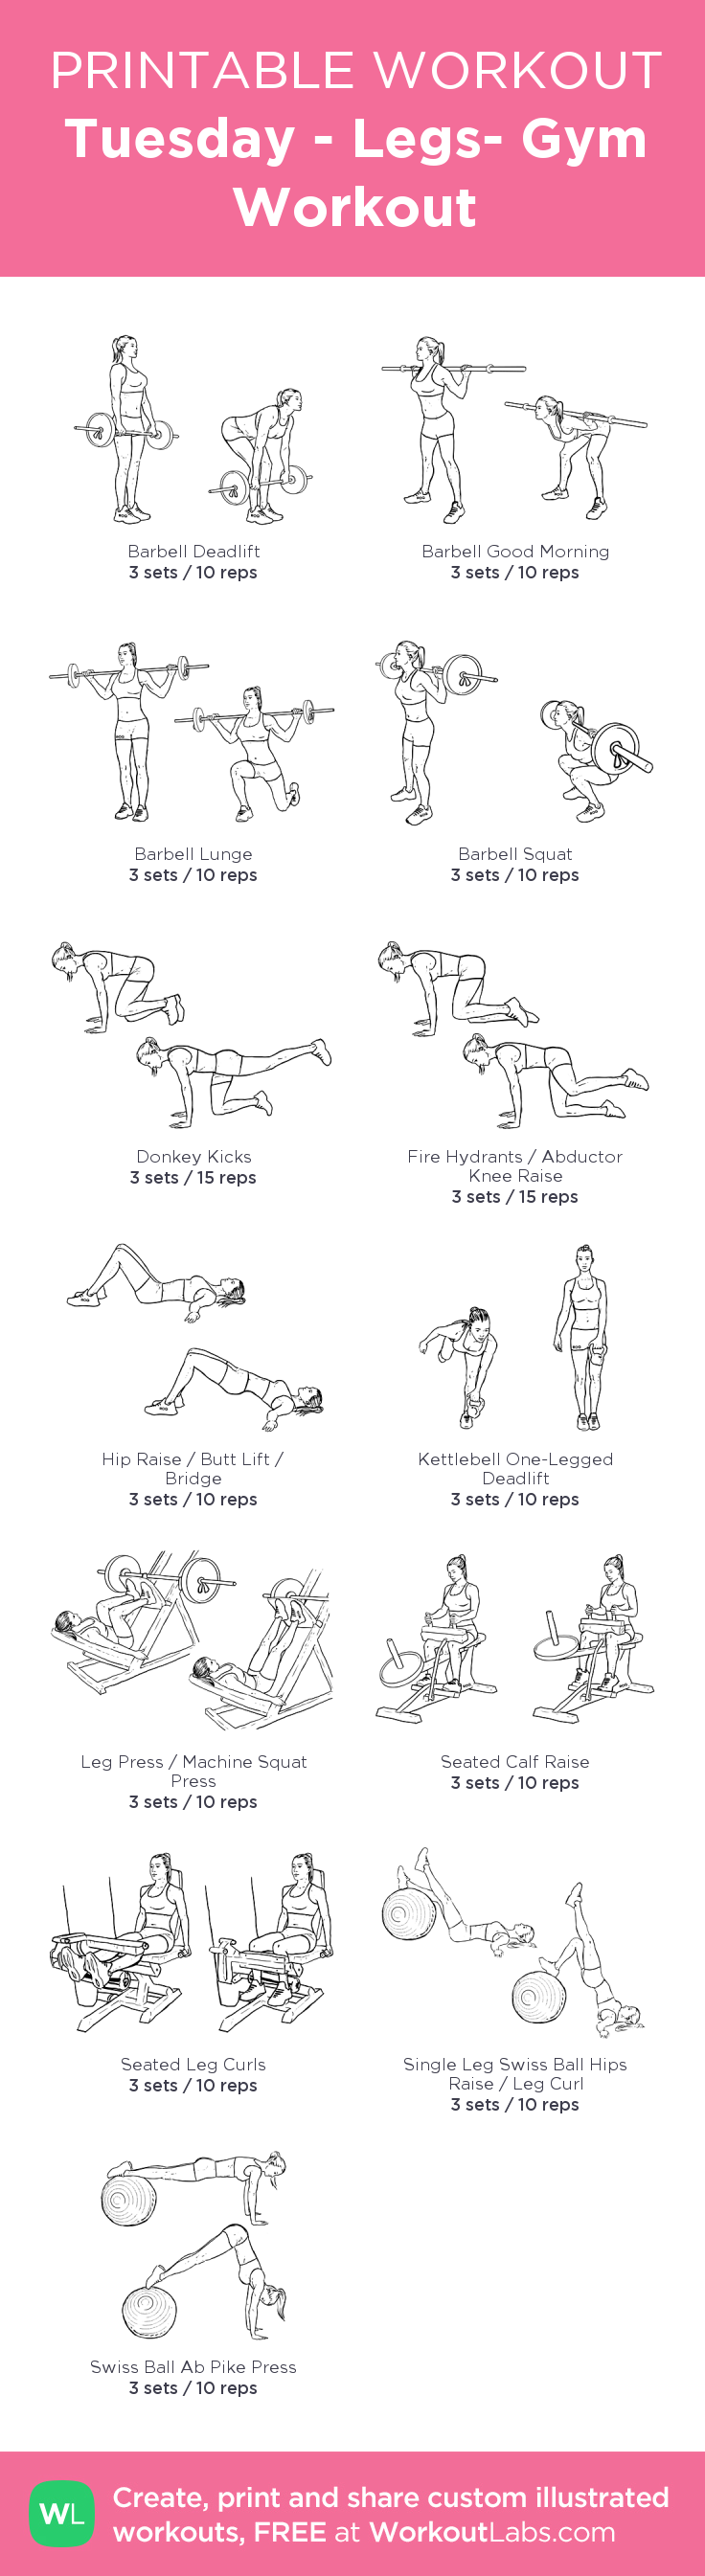 Tuesday - Legs- Gym Workout –my custom workout created at WorkoutLabs.com • Click through to download as printable PDF! #customworkout